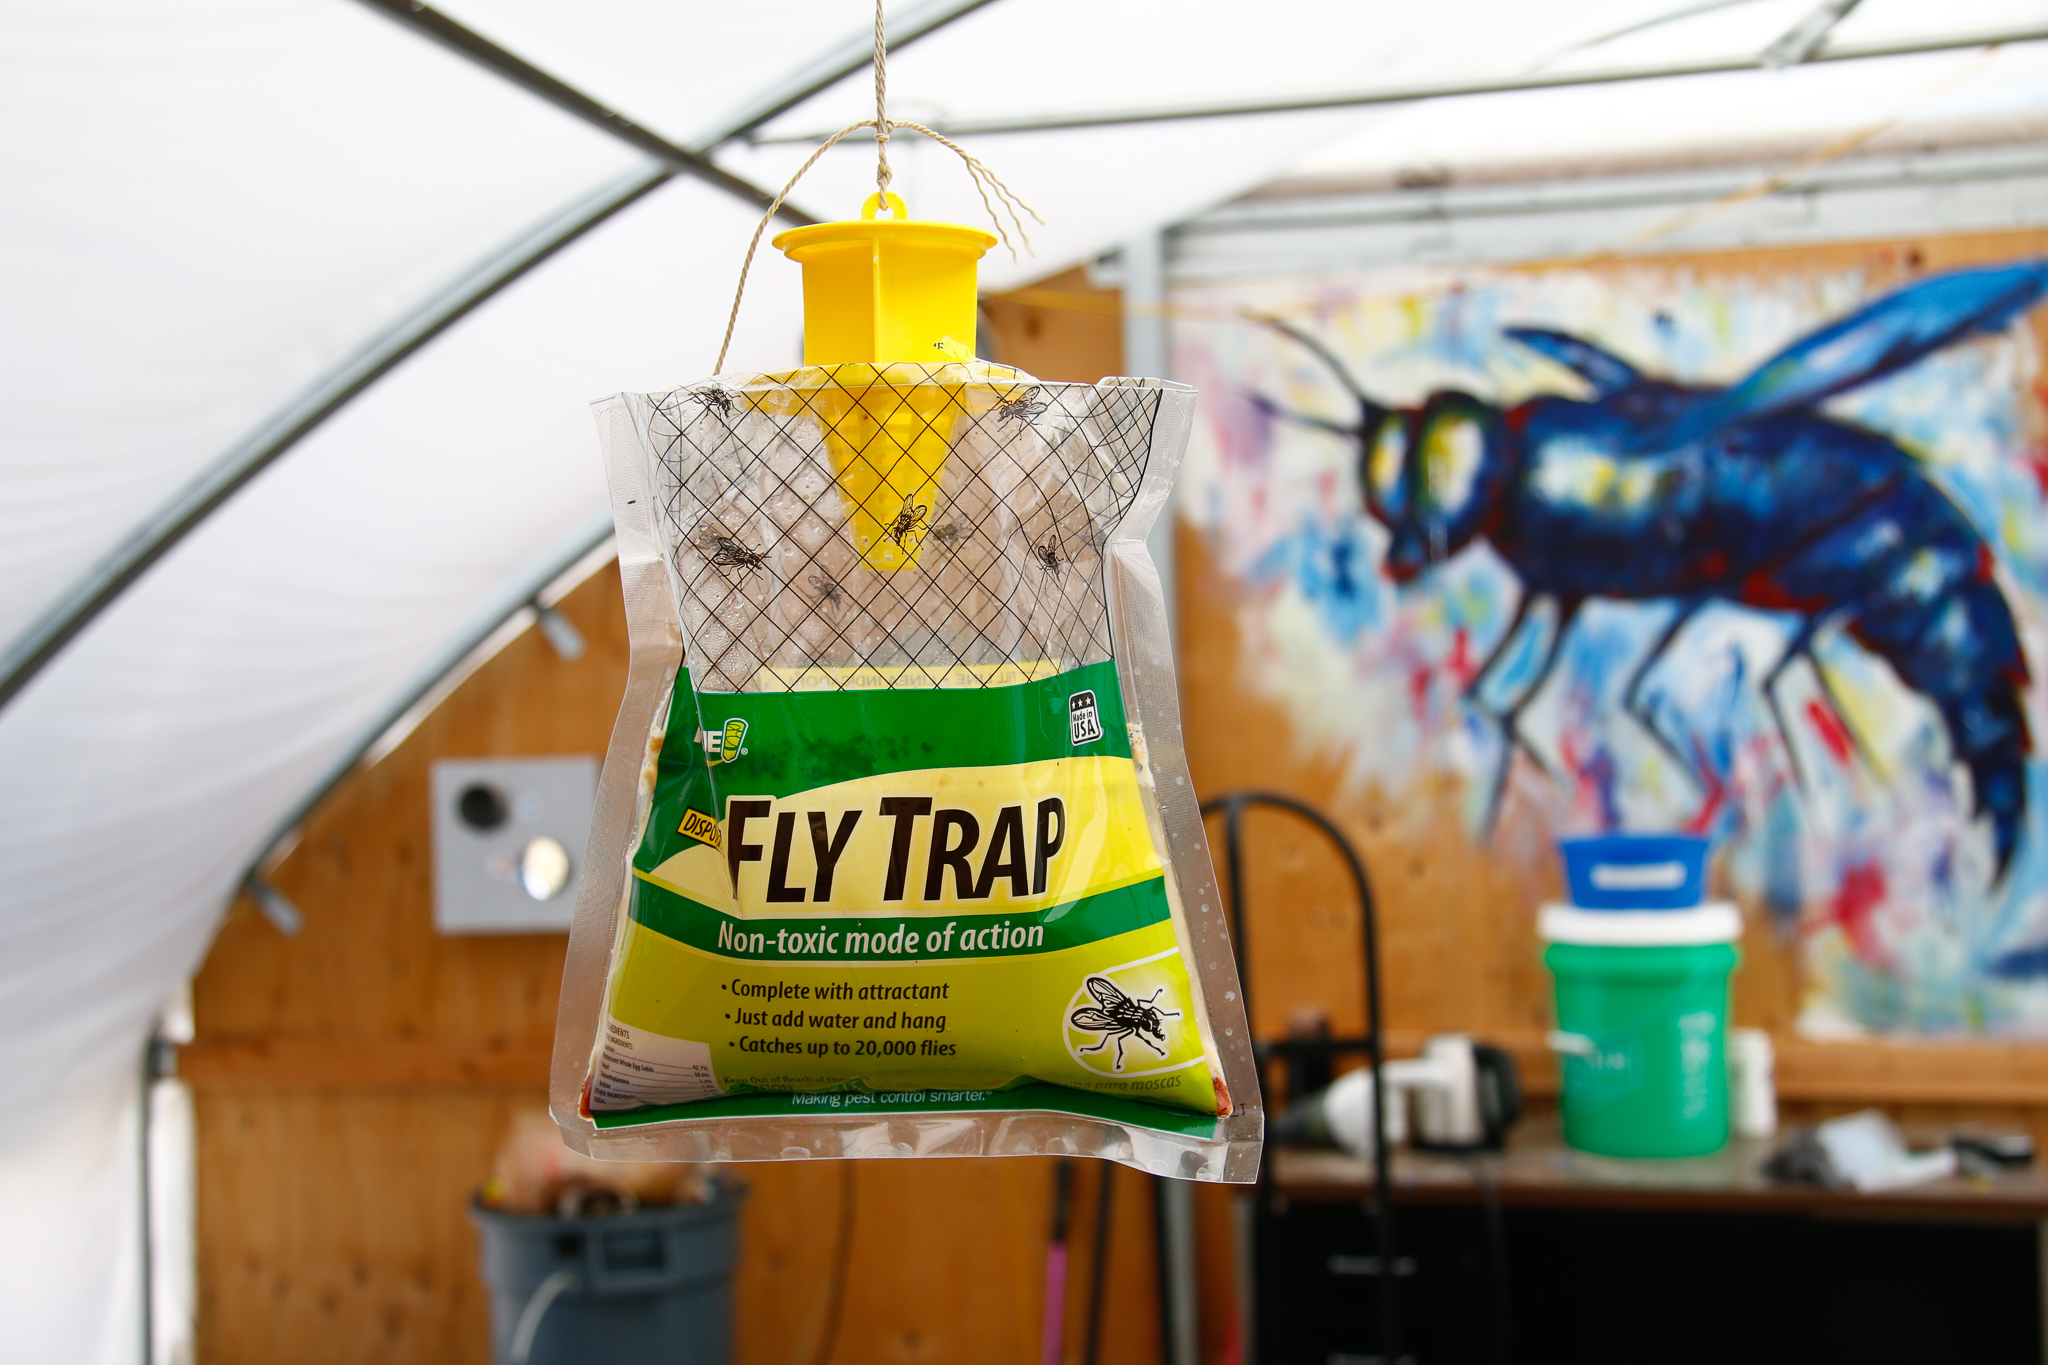 Despite the apparent irony of a fly trap in a fly-producing facility, Phil Taylor doesn't want house flies mixing in with his livestock. Unlike black soldier flies, house flies carry disease.